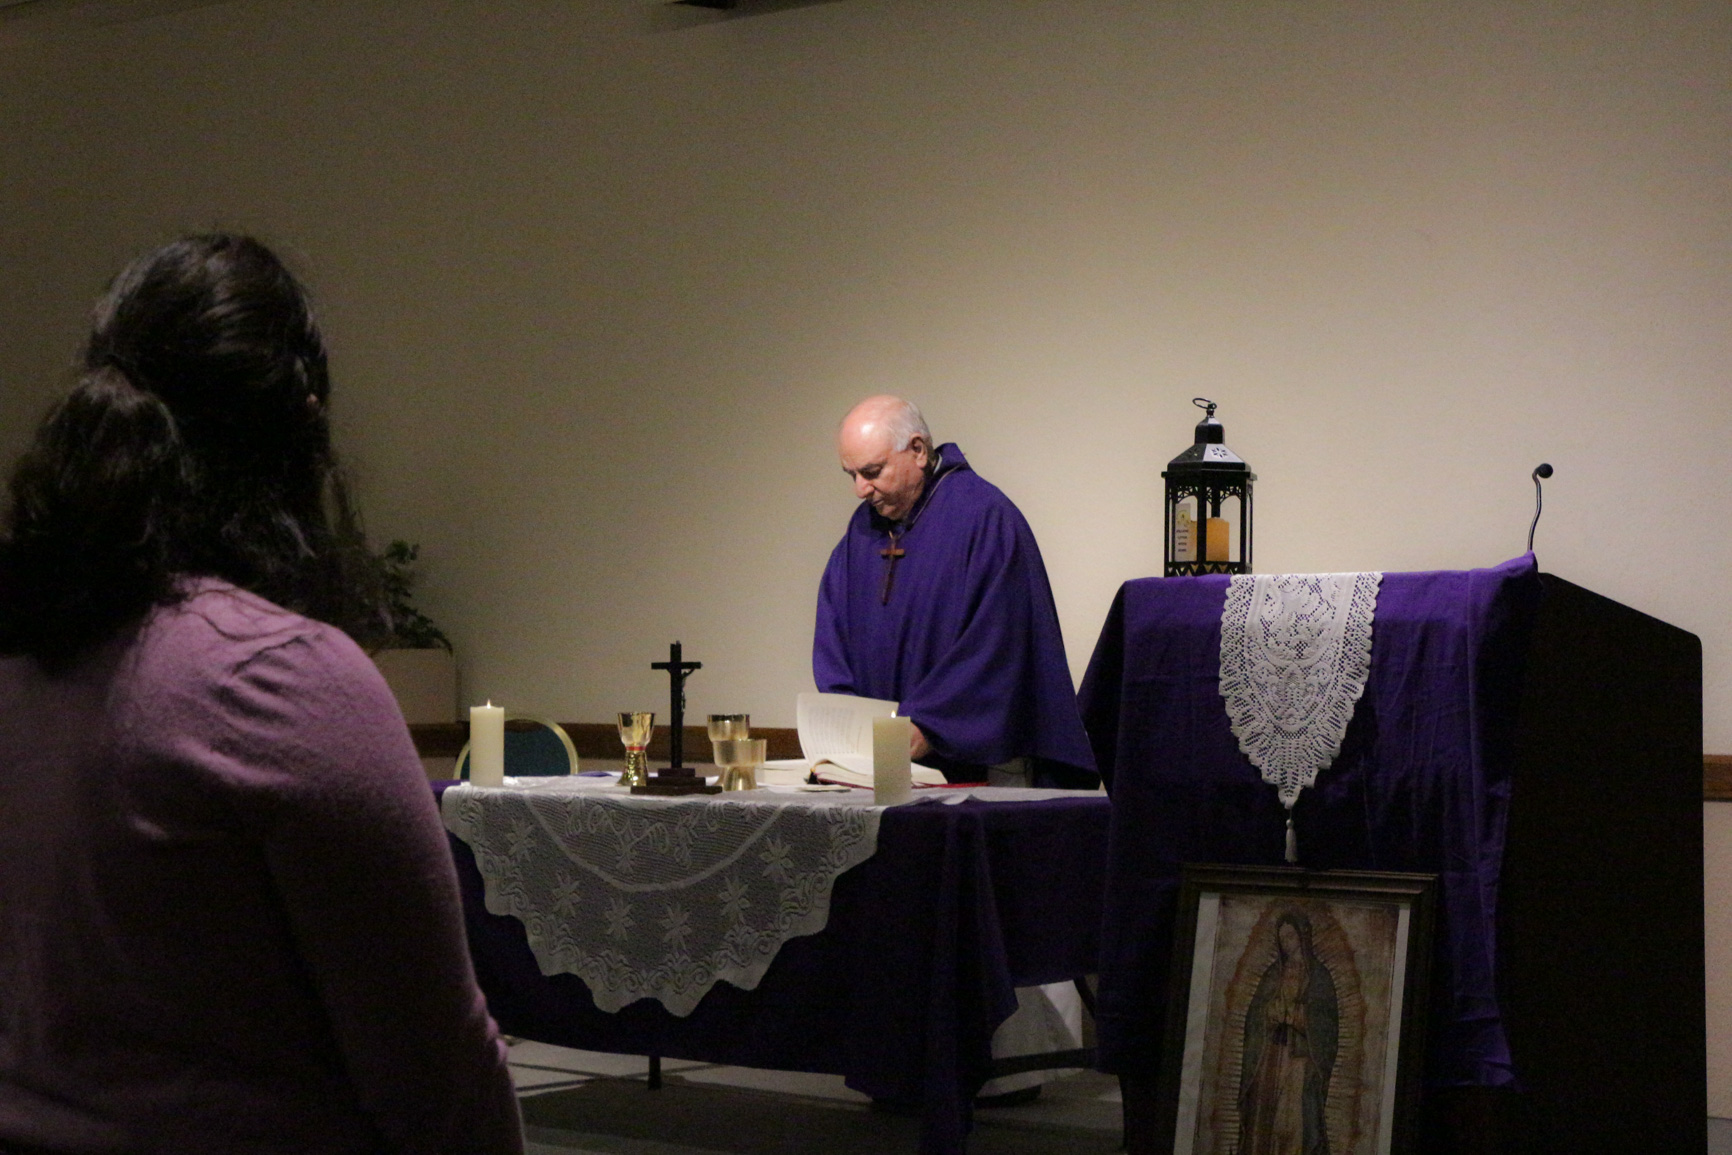 THE CATHOLIC NEWMAN CLUB HOSTS ASH WEDNESDAY